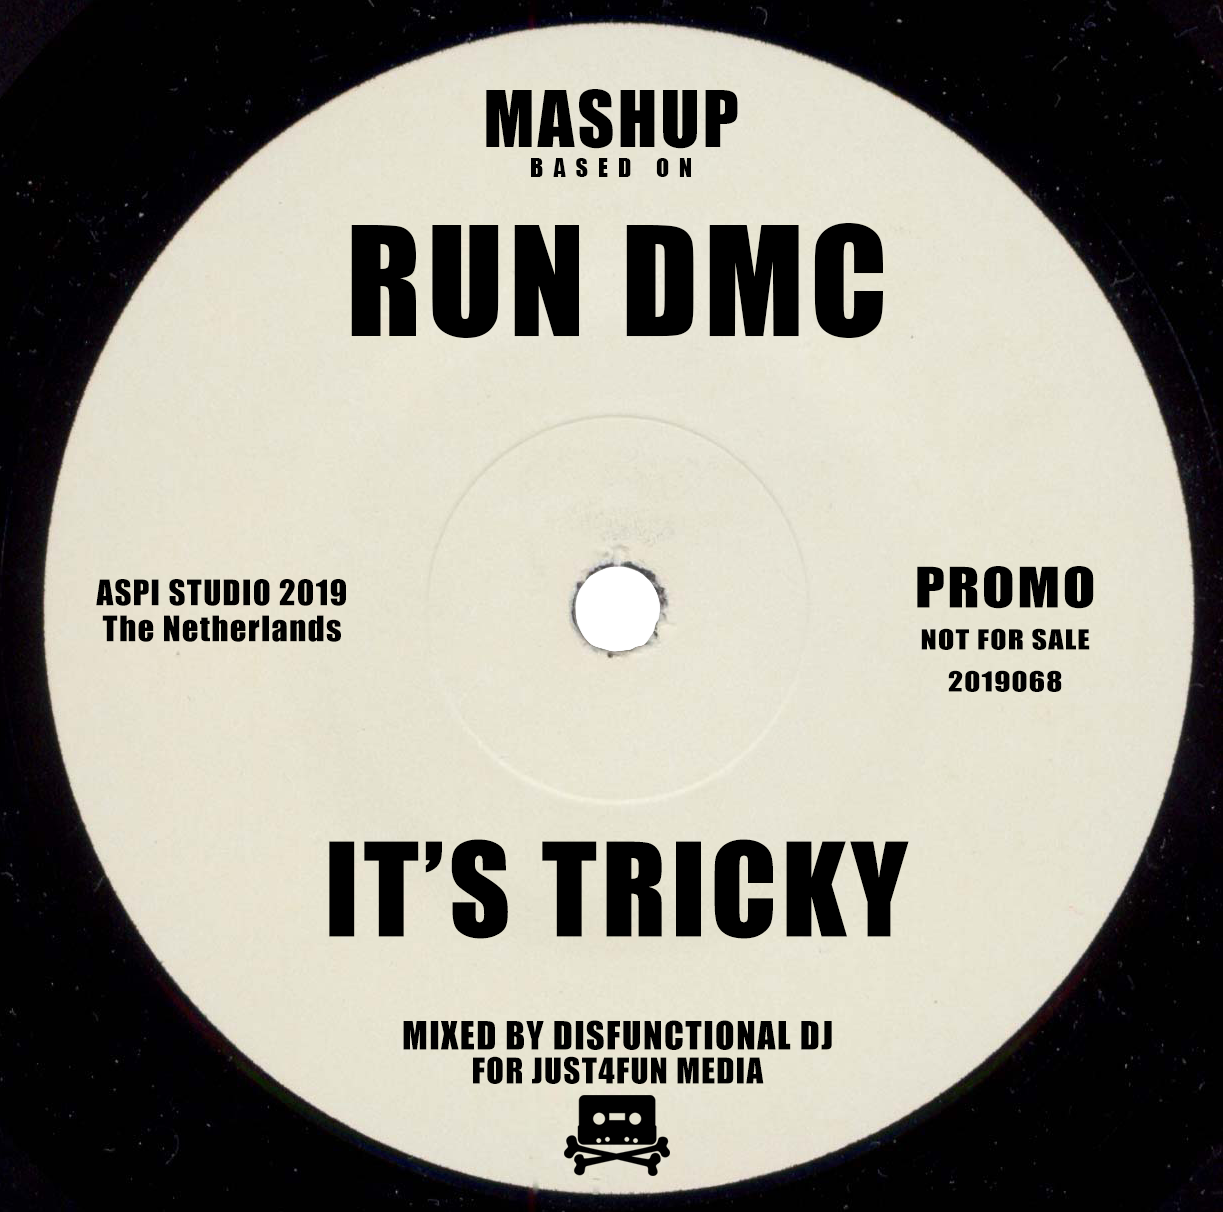 RUN DMC and Others - It's A Tricky Mashup - Disfunctional DJ